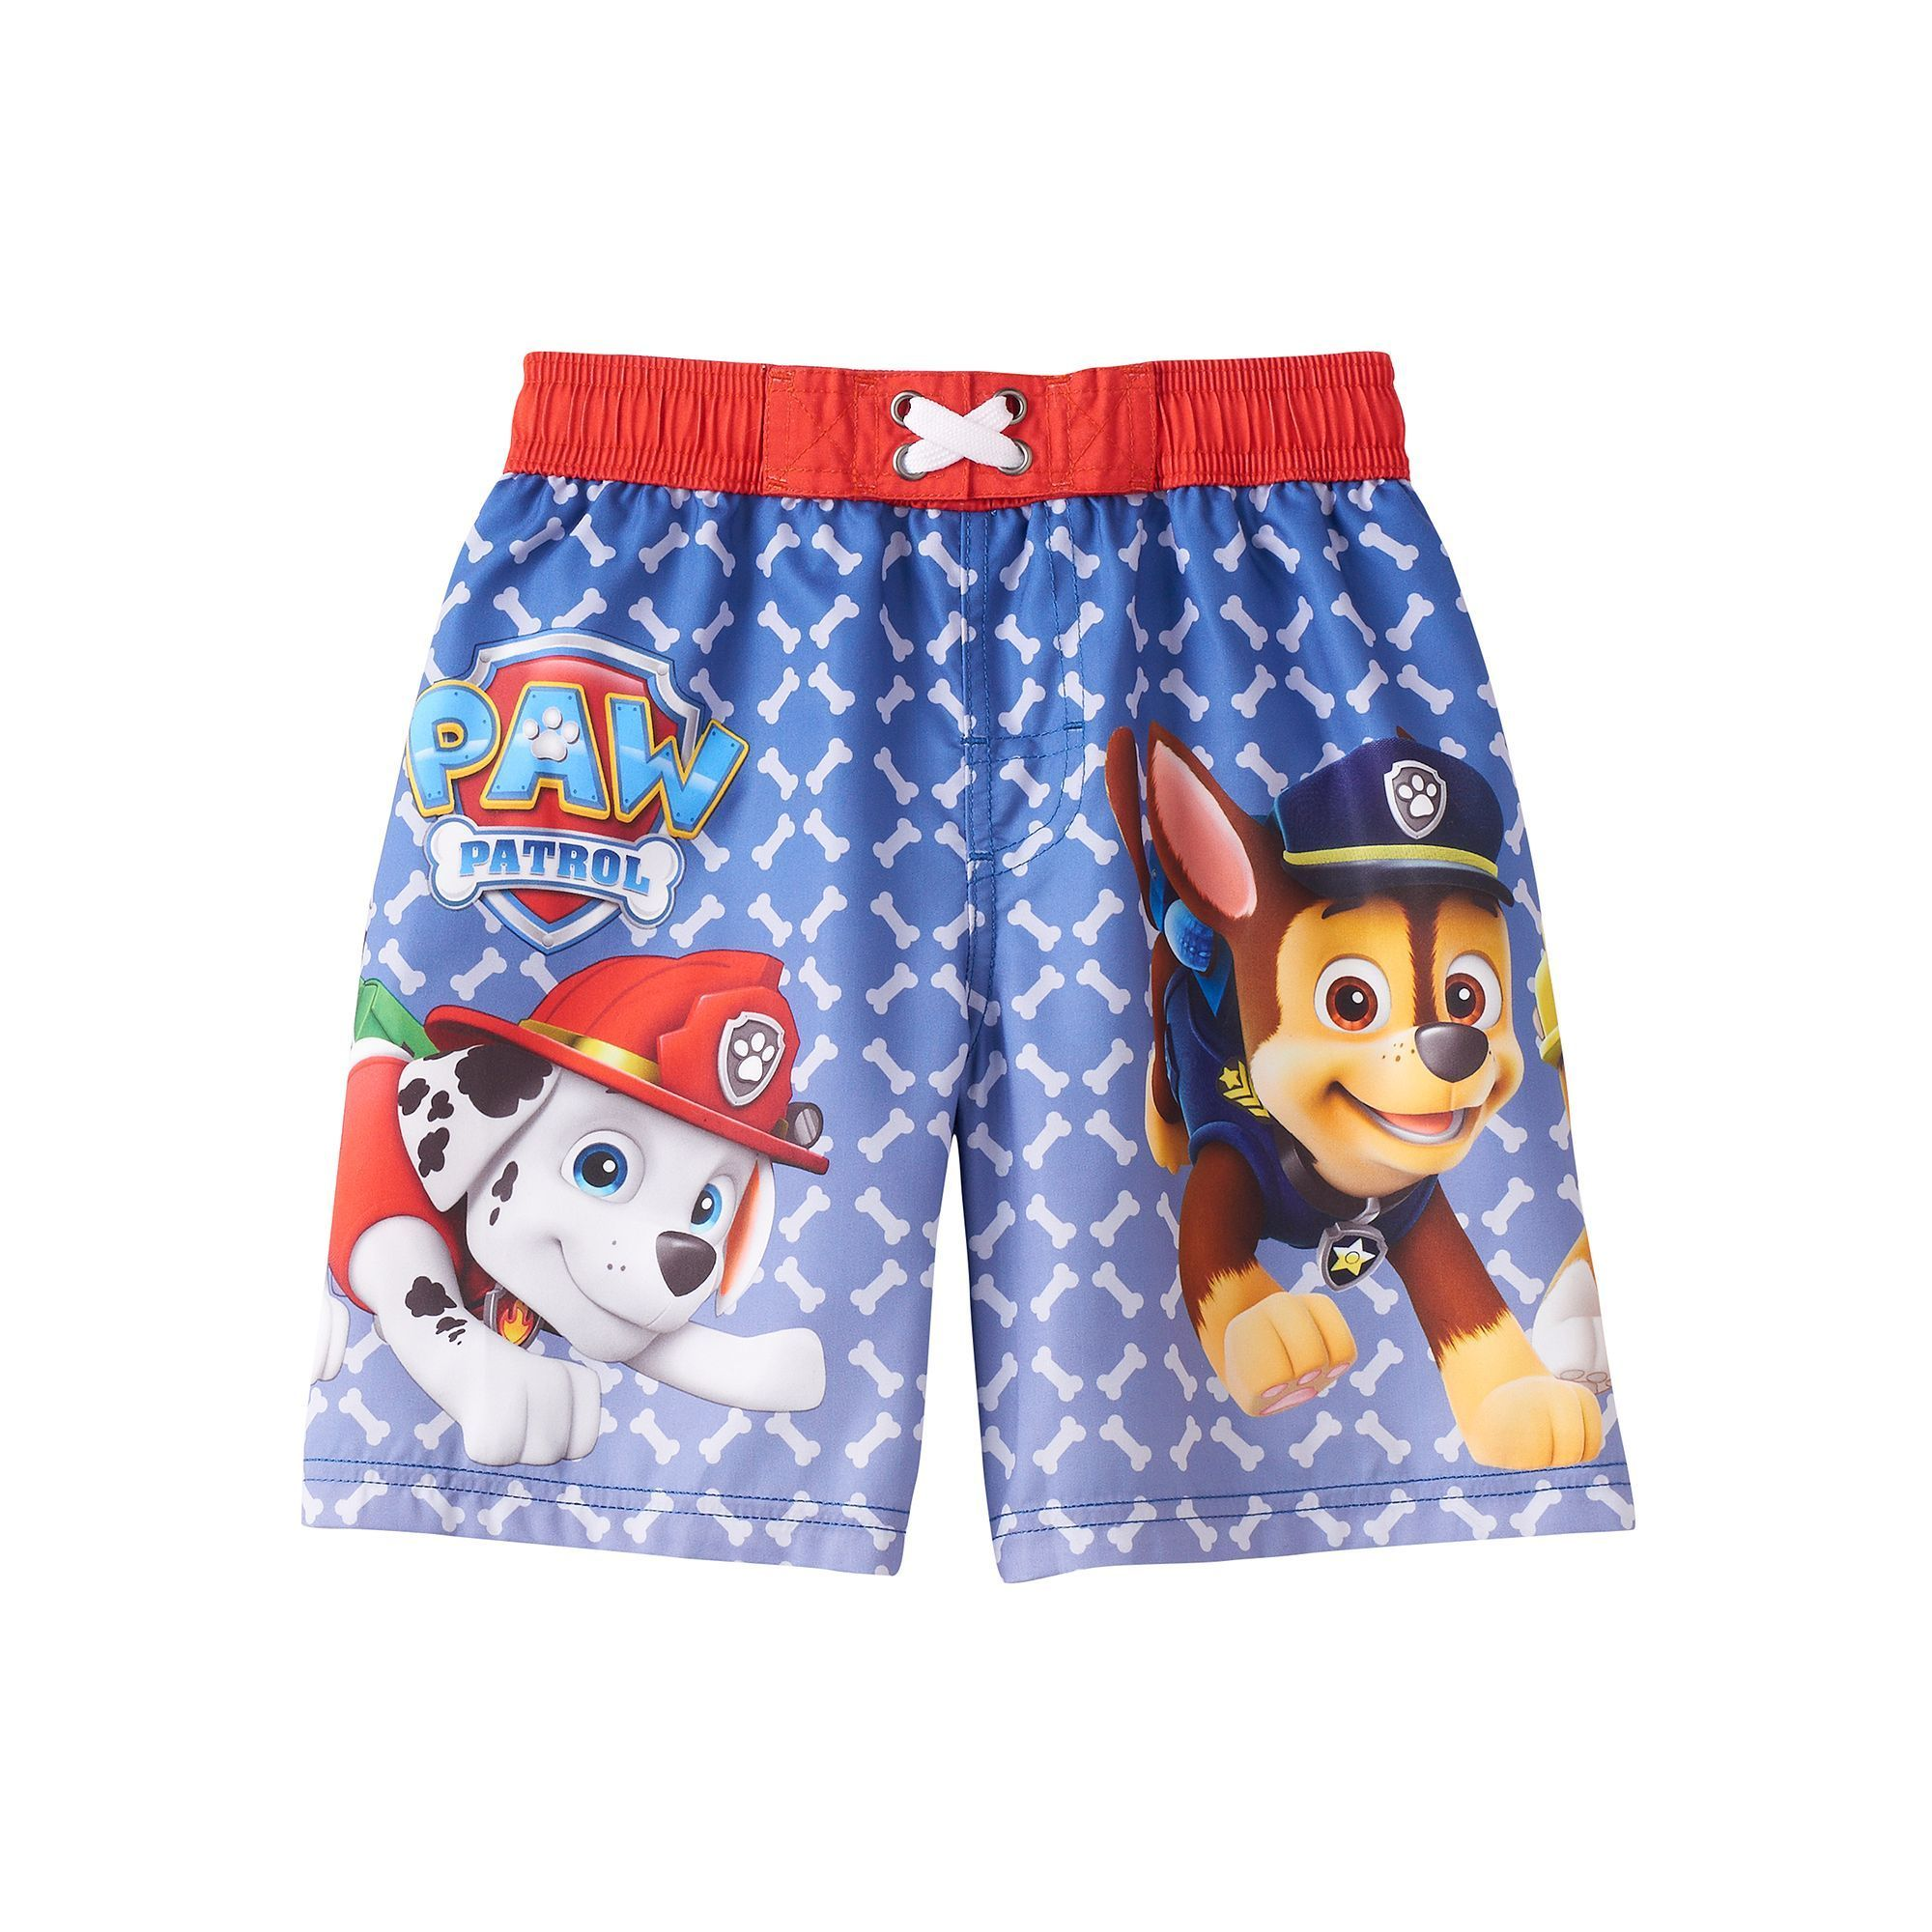 efdf4a1bf4ff5 Boys 4-7 Paw Patrol Marshall, Chase & Rubble Swim Trunks, Boy's, Size: 5,  Red